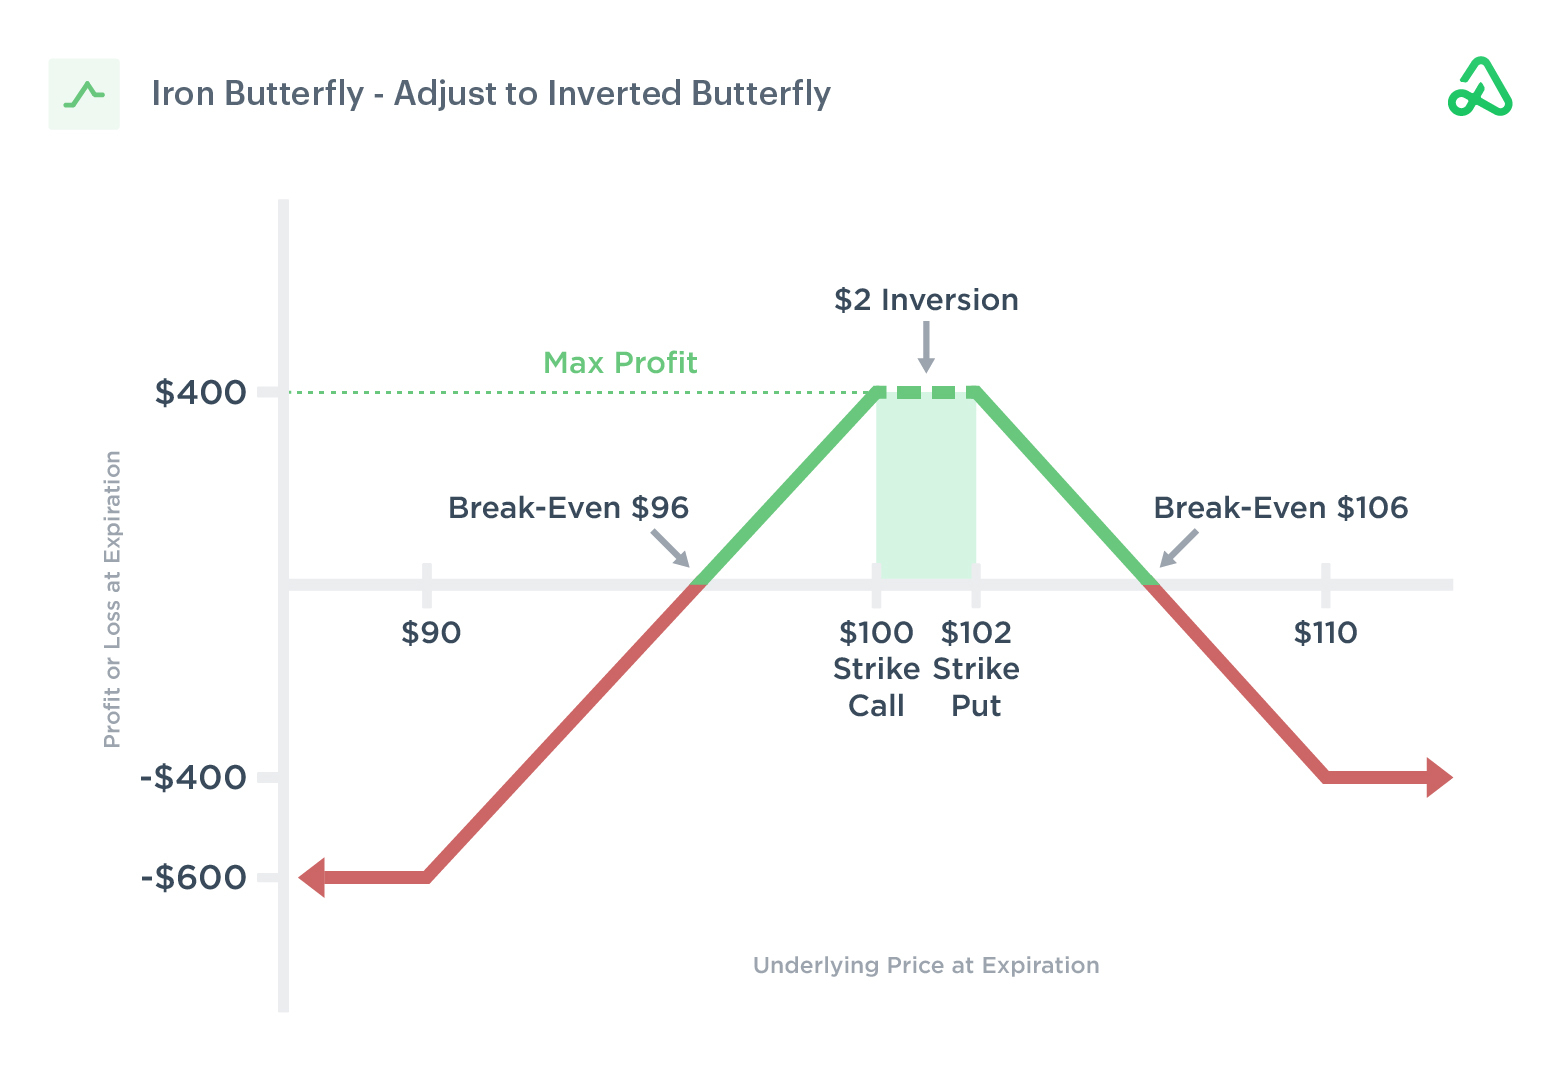 Iron Butterfly adjust to to inverted butterfly